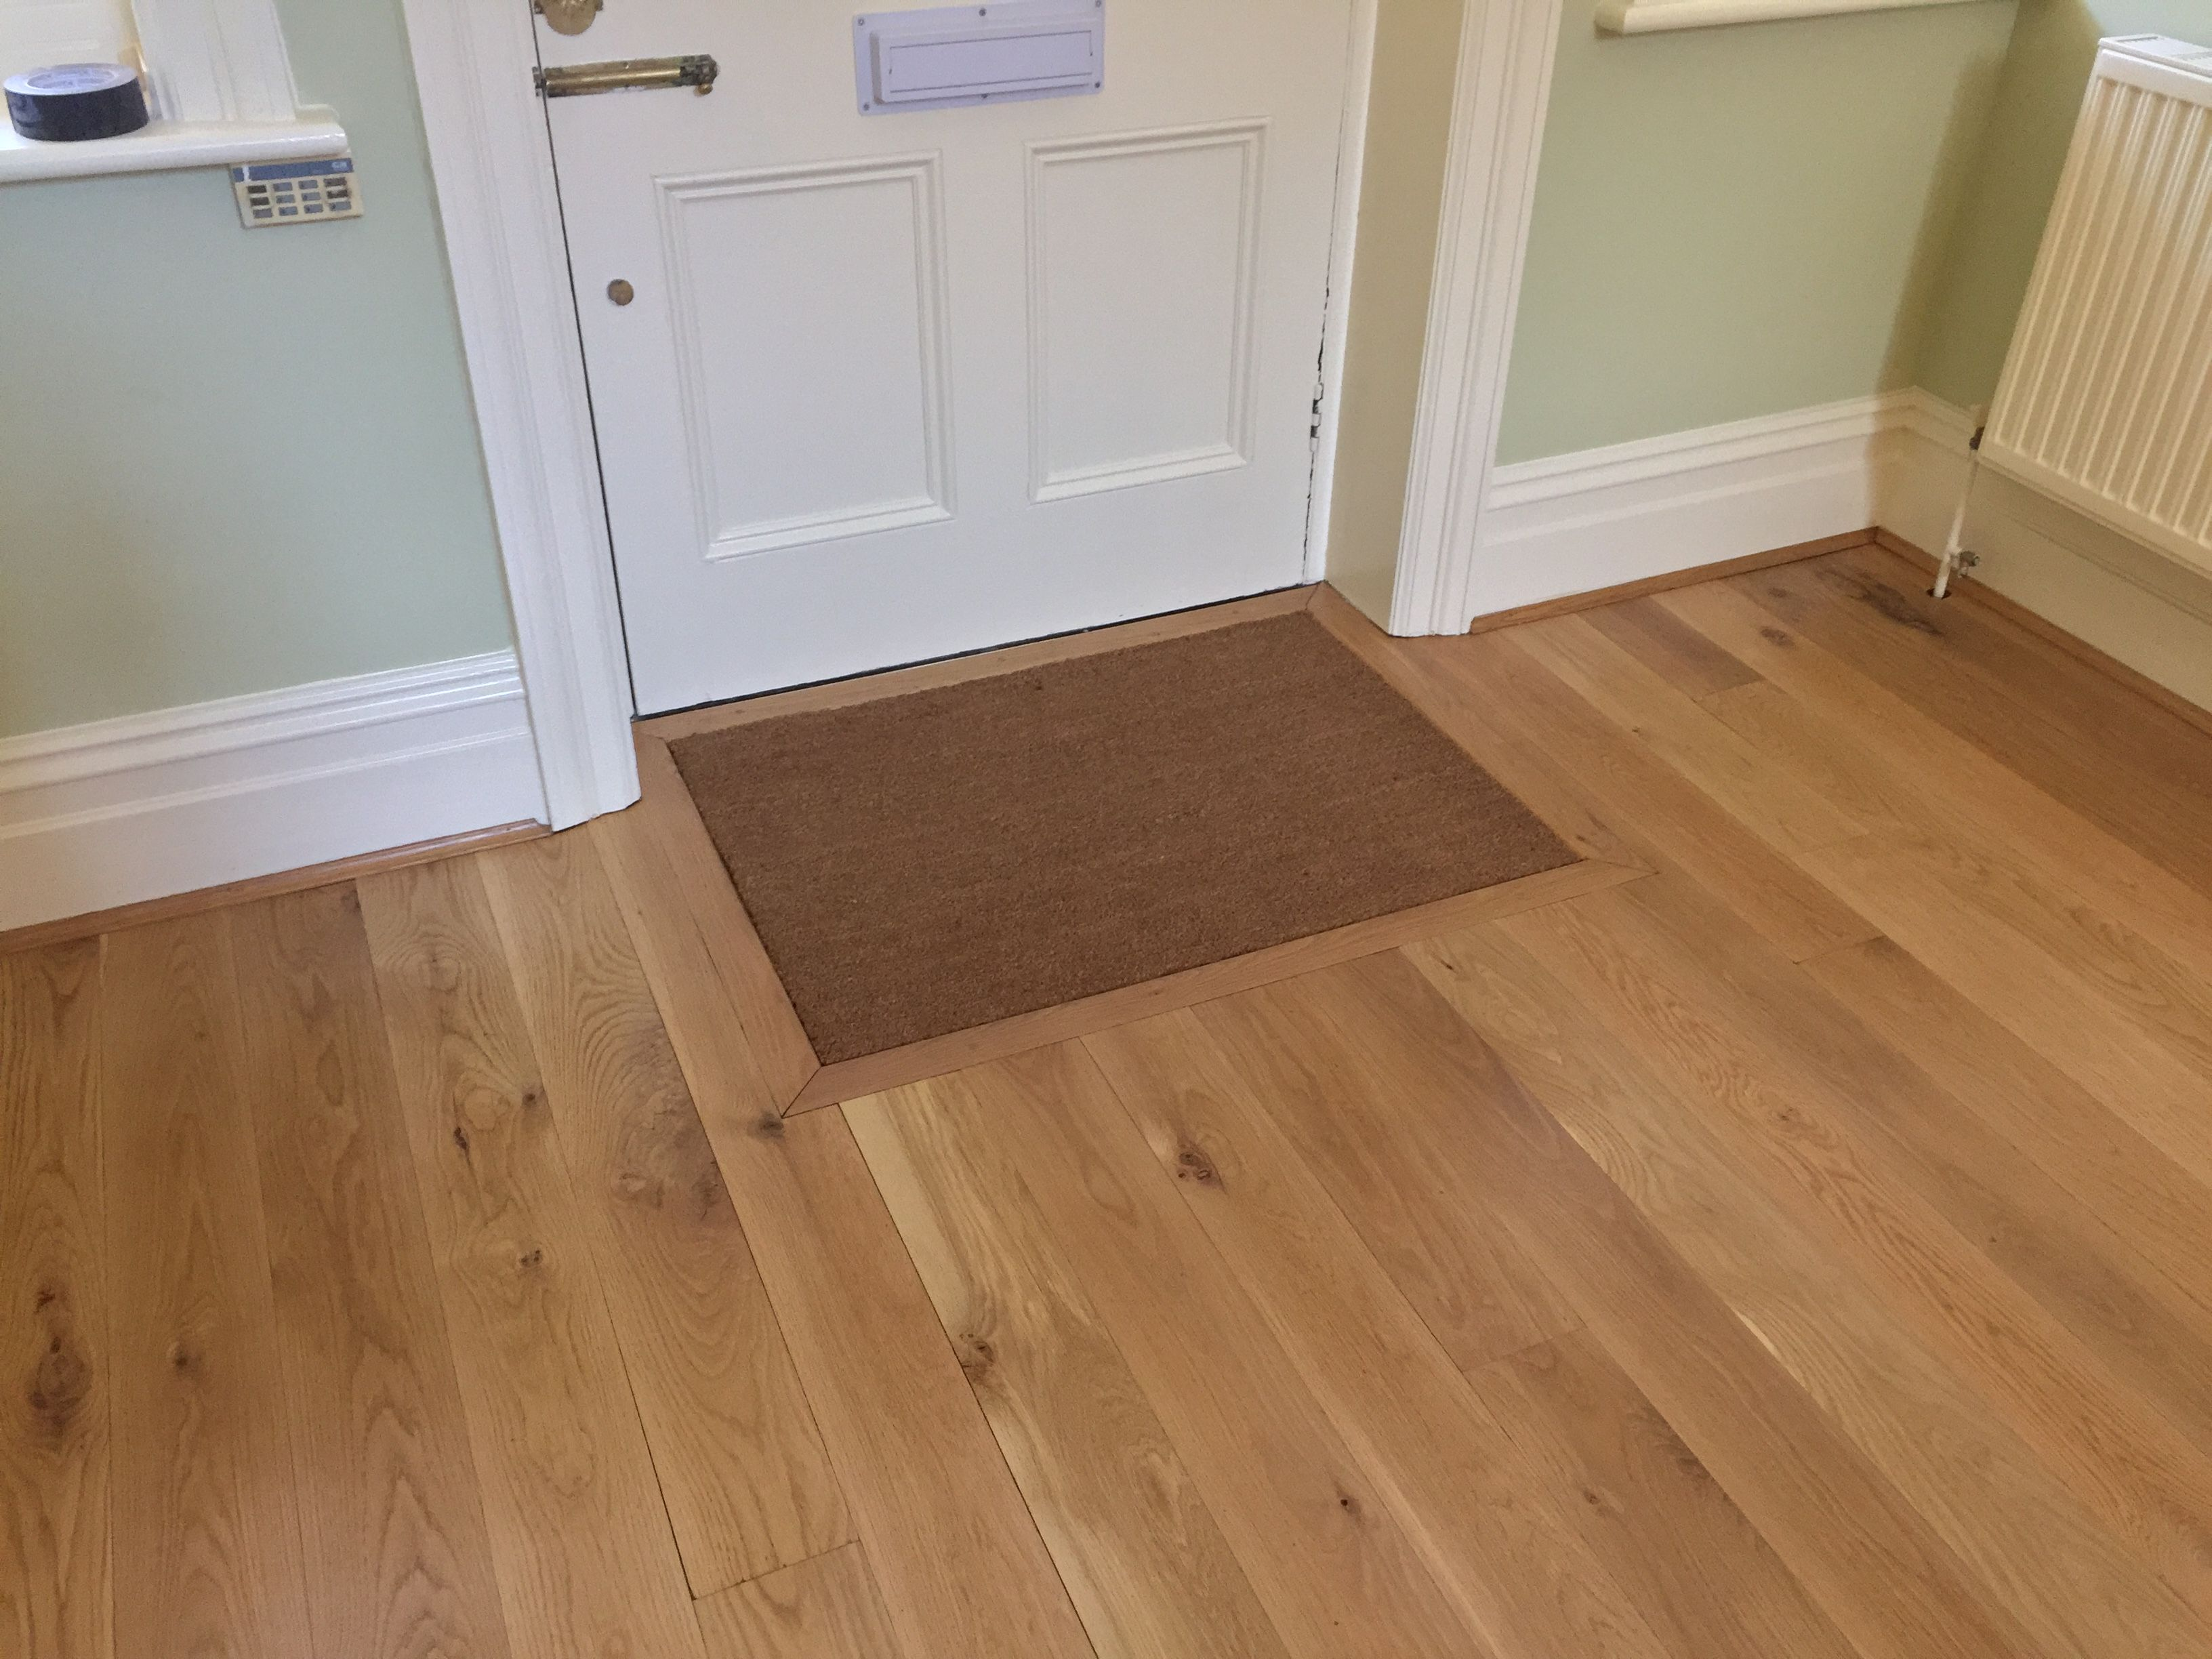 A Coir mat is a great way to protect your oak wood floor